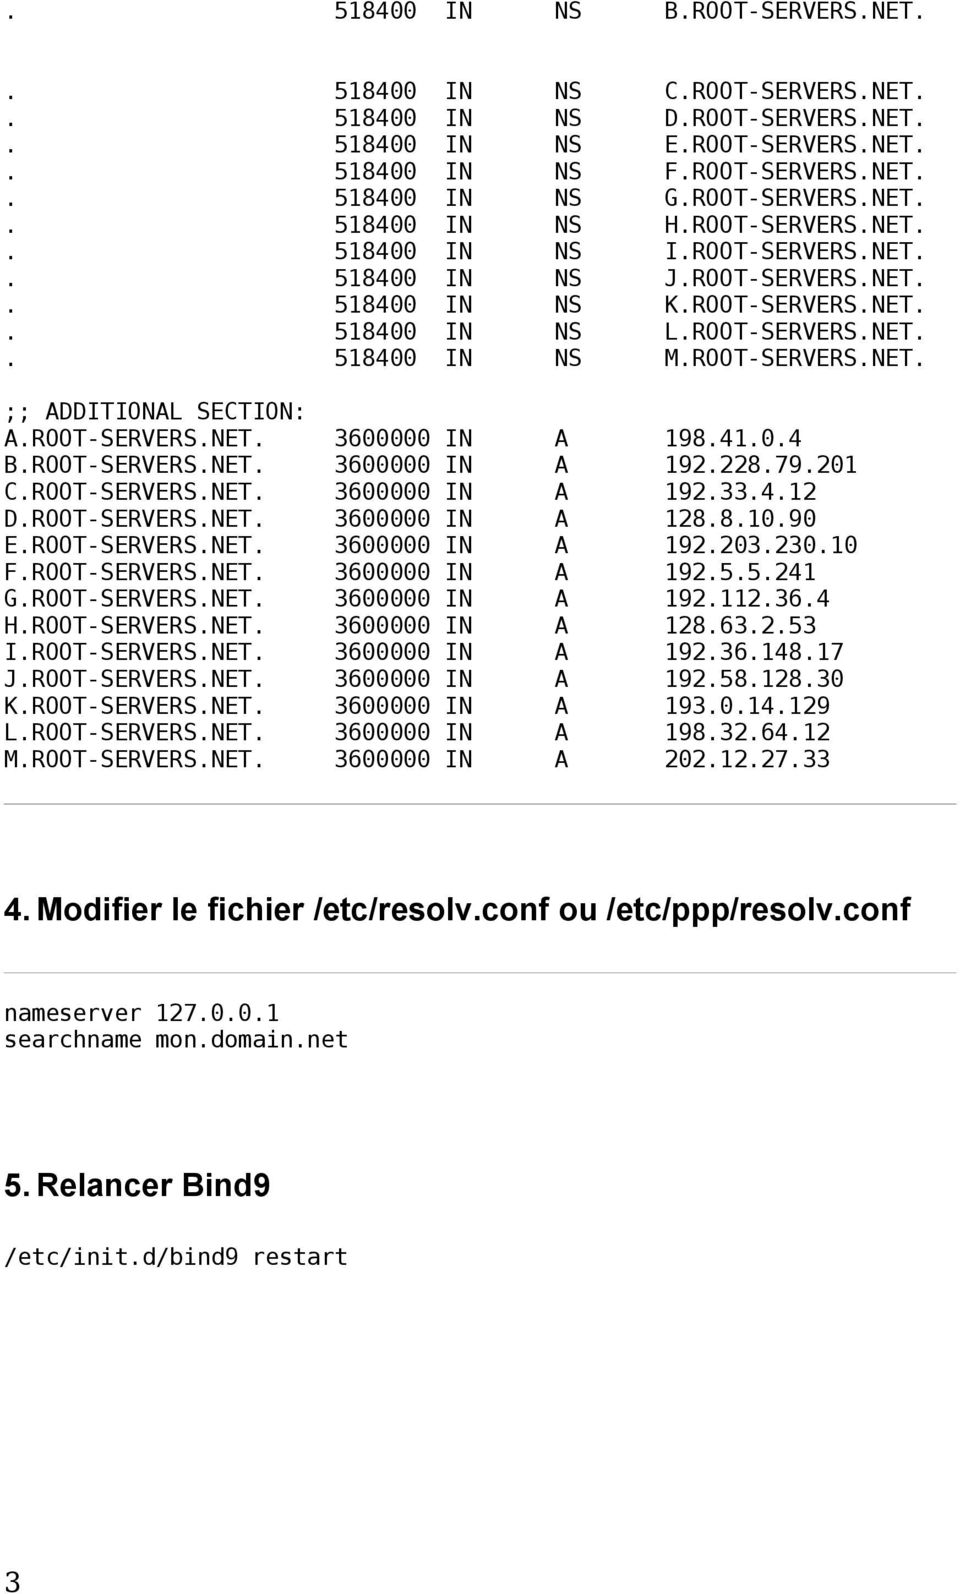 ROOT-SERVERS.NET. 3600000 IN A 198.41.0.4 B.ROOT-SERVERS.NET. 3600000 IN A 192.228.79.201 C.ROOT-SERVERS.NET. 3600000 IN A 192.33.4.12 D.ROOT-SERVERS.NET. 3600000 IN A 128.8.10.90 E.ROOT-SERVERS.NET. 3600000 IN A 192.203.